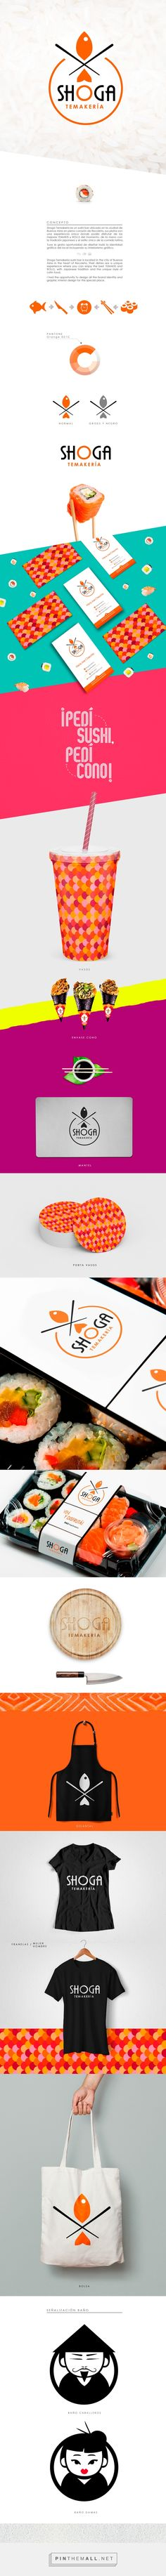 Branding, graphic design and packaging for Shoga Temakería on Behance by Nandox82 • Fernando Augusto Rodriguez Mexico, City, MX curated by Packaging Diva PD. Love this sushi concept.